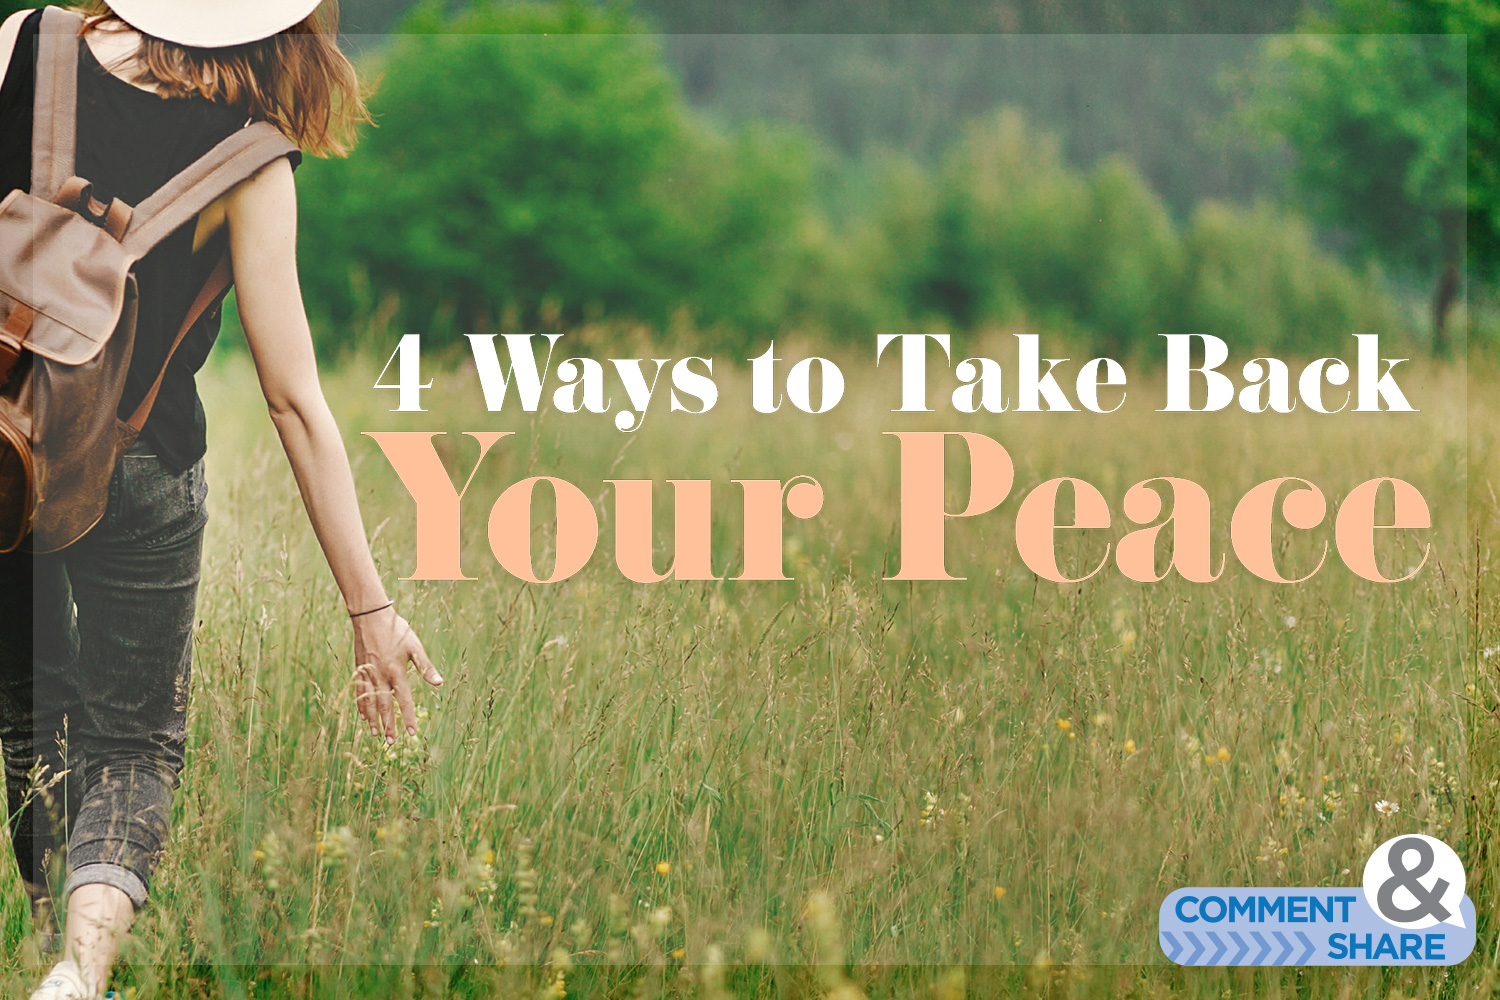 4 Ways to Take Back Your Peace